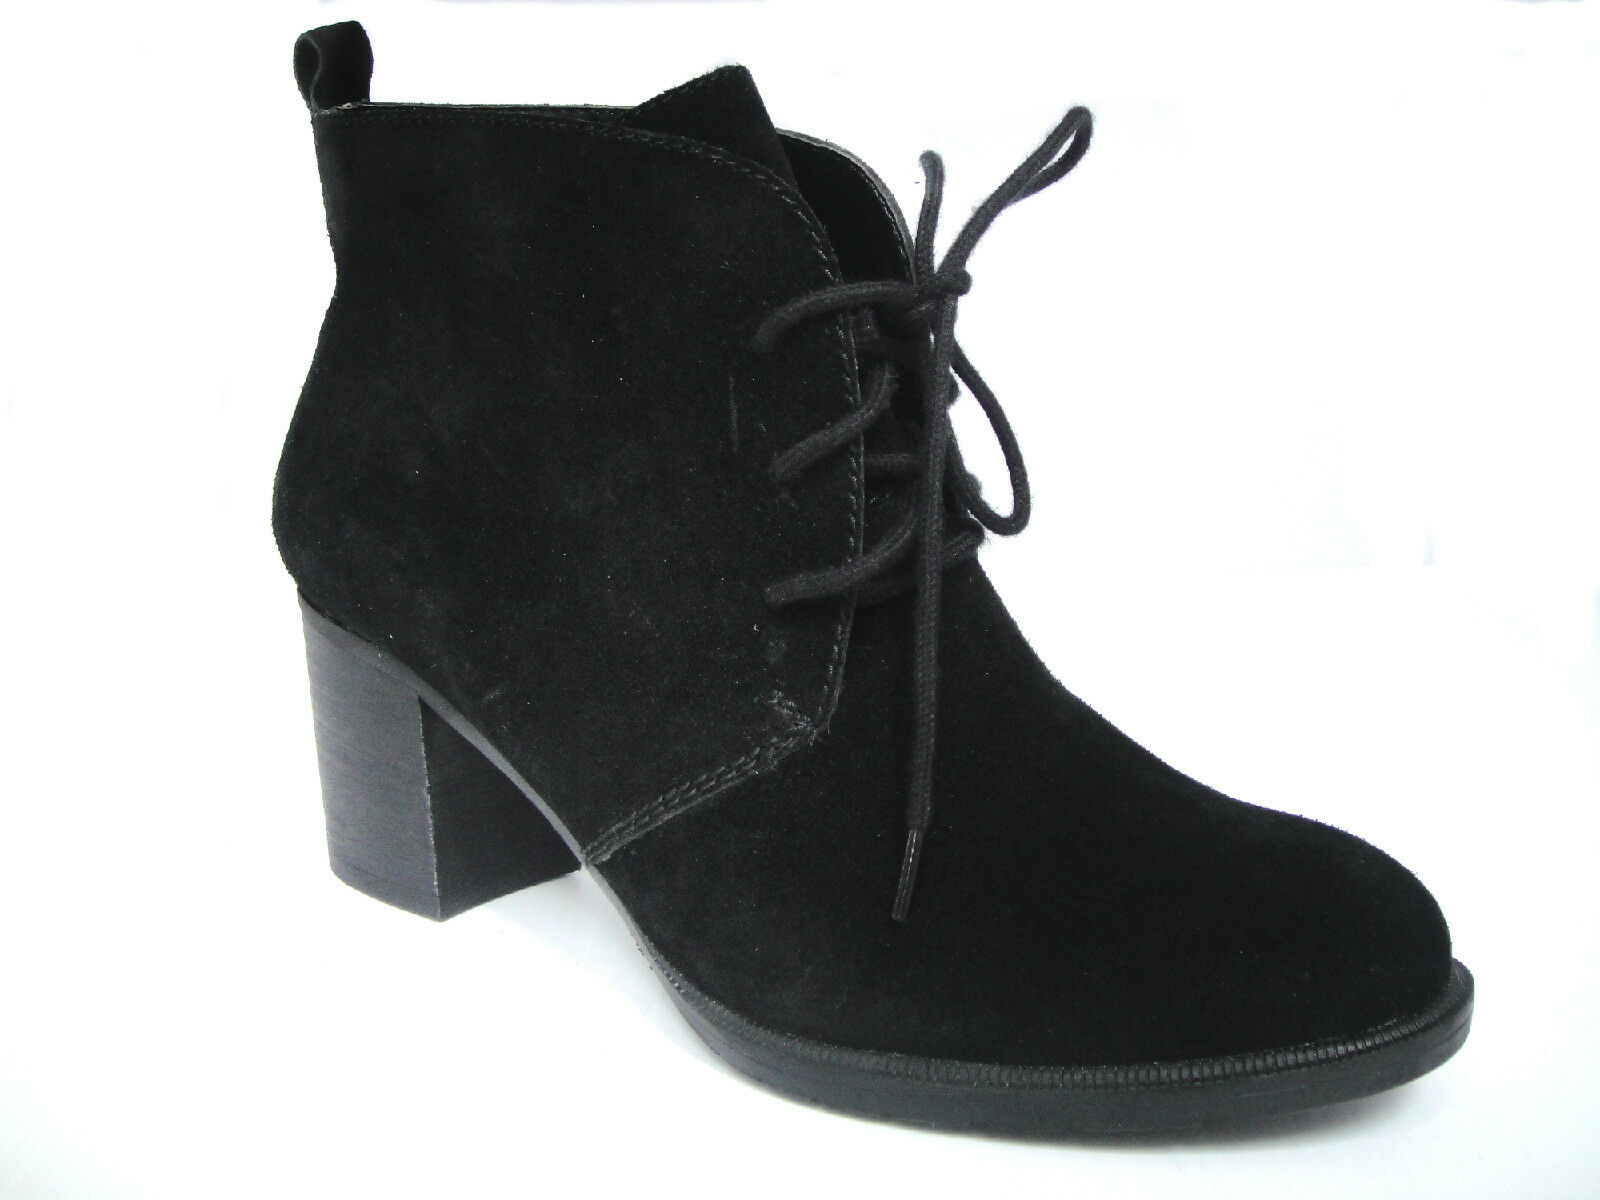 New BareTraps Giselle Suede Ankle botas w  Lace-up Detail mujer bota Talla 9.5